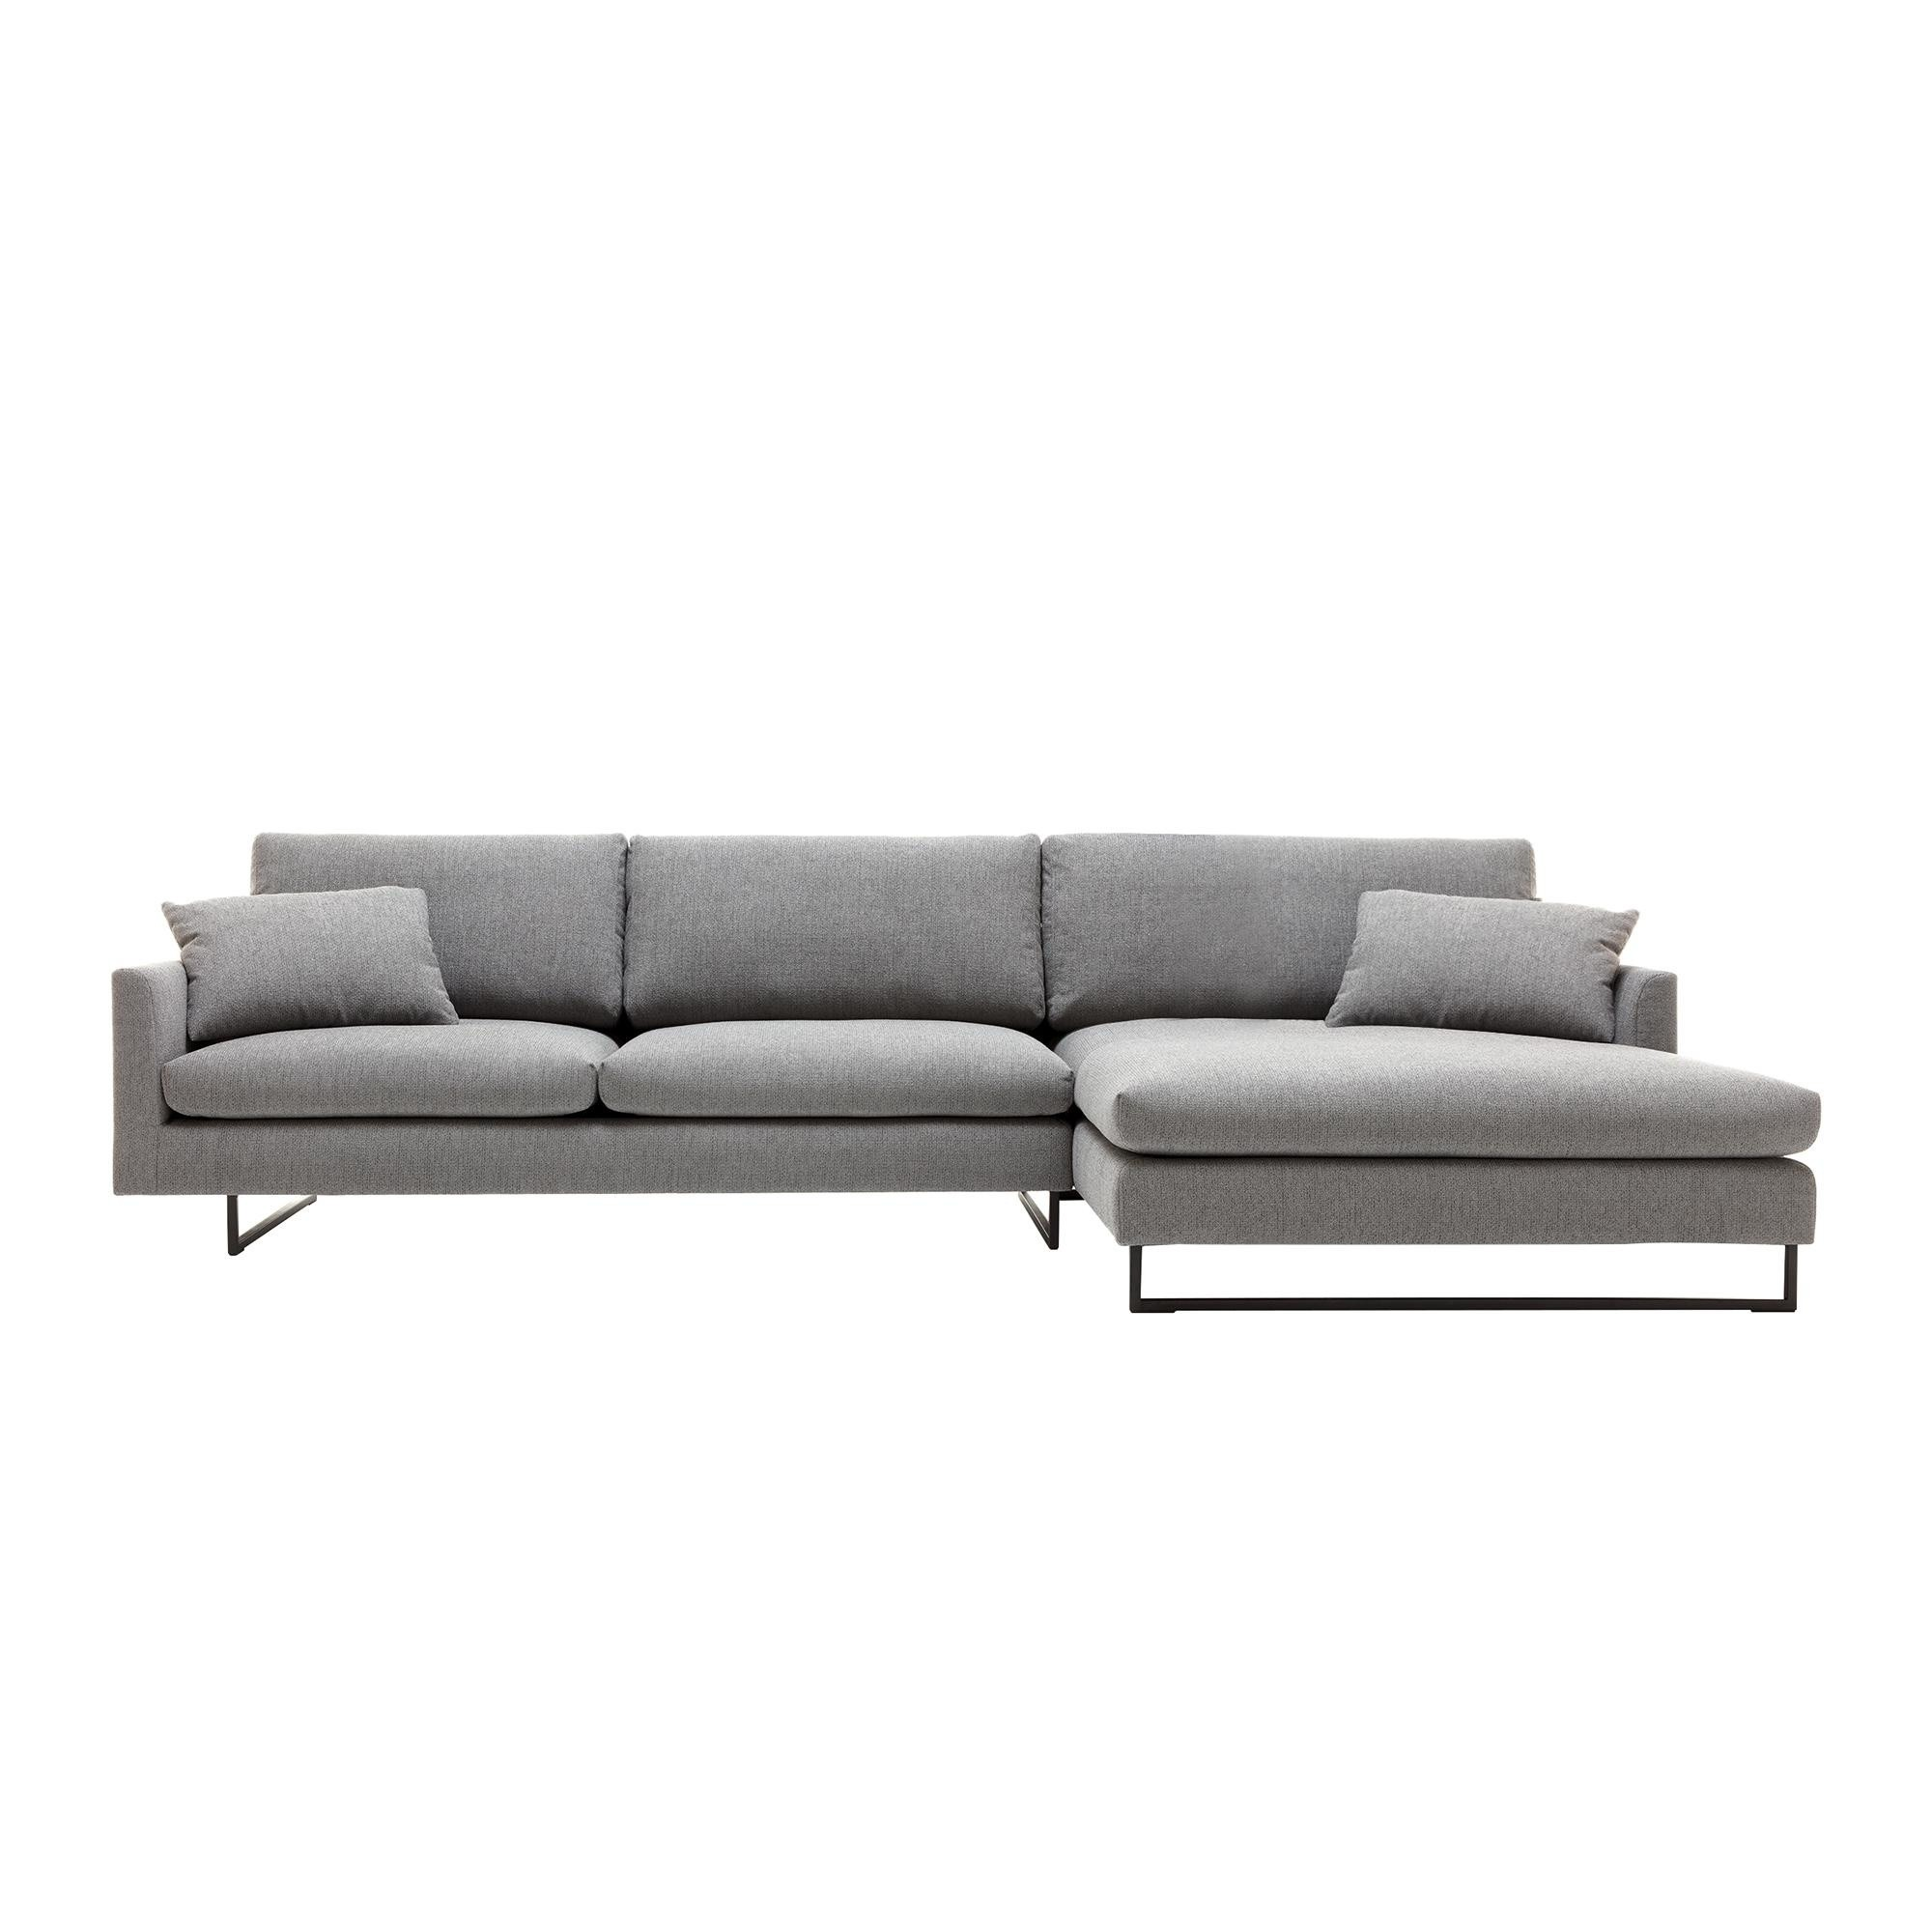 Freistil Rolf Benz Freistil 134 Lounge Sofa 330x177cm Ambientedirect